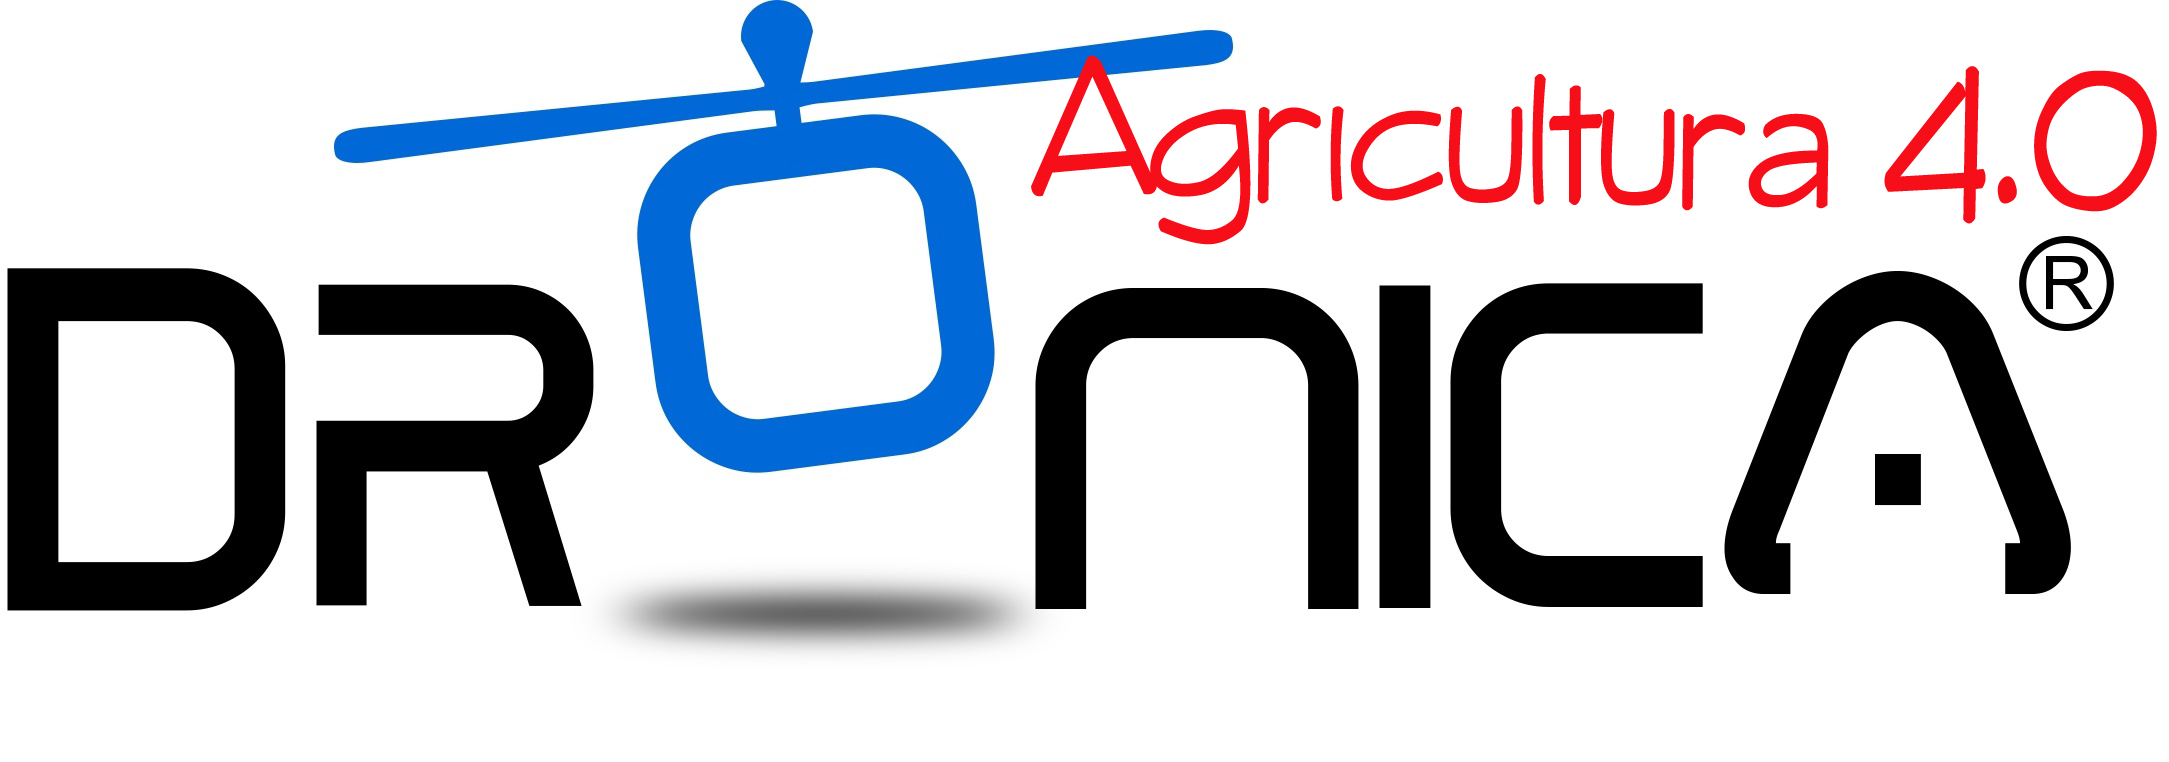 dronica-logo-agricultura